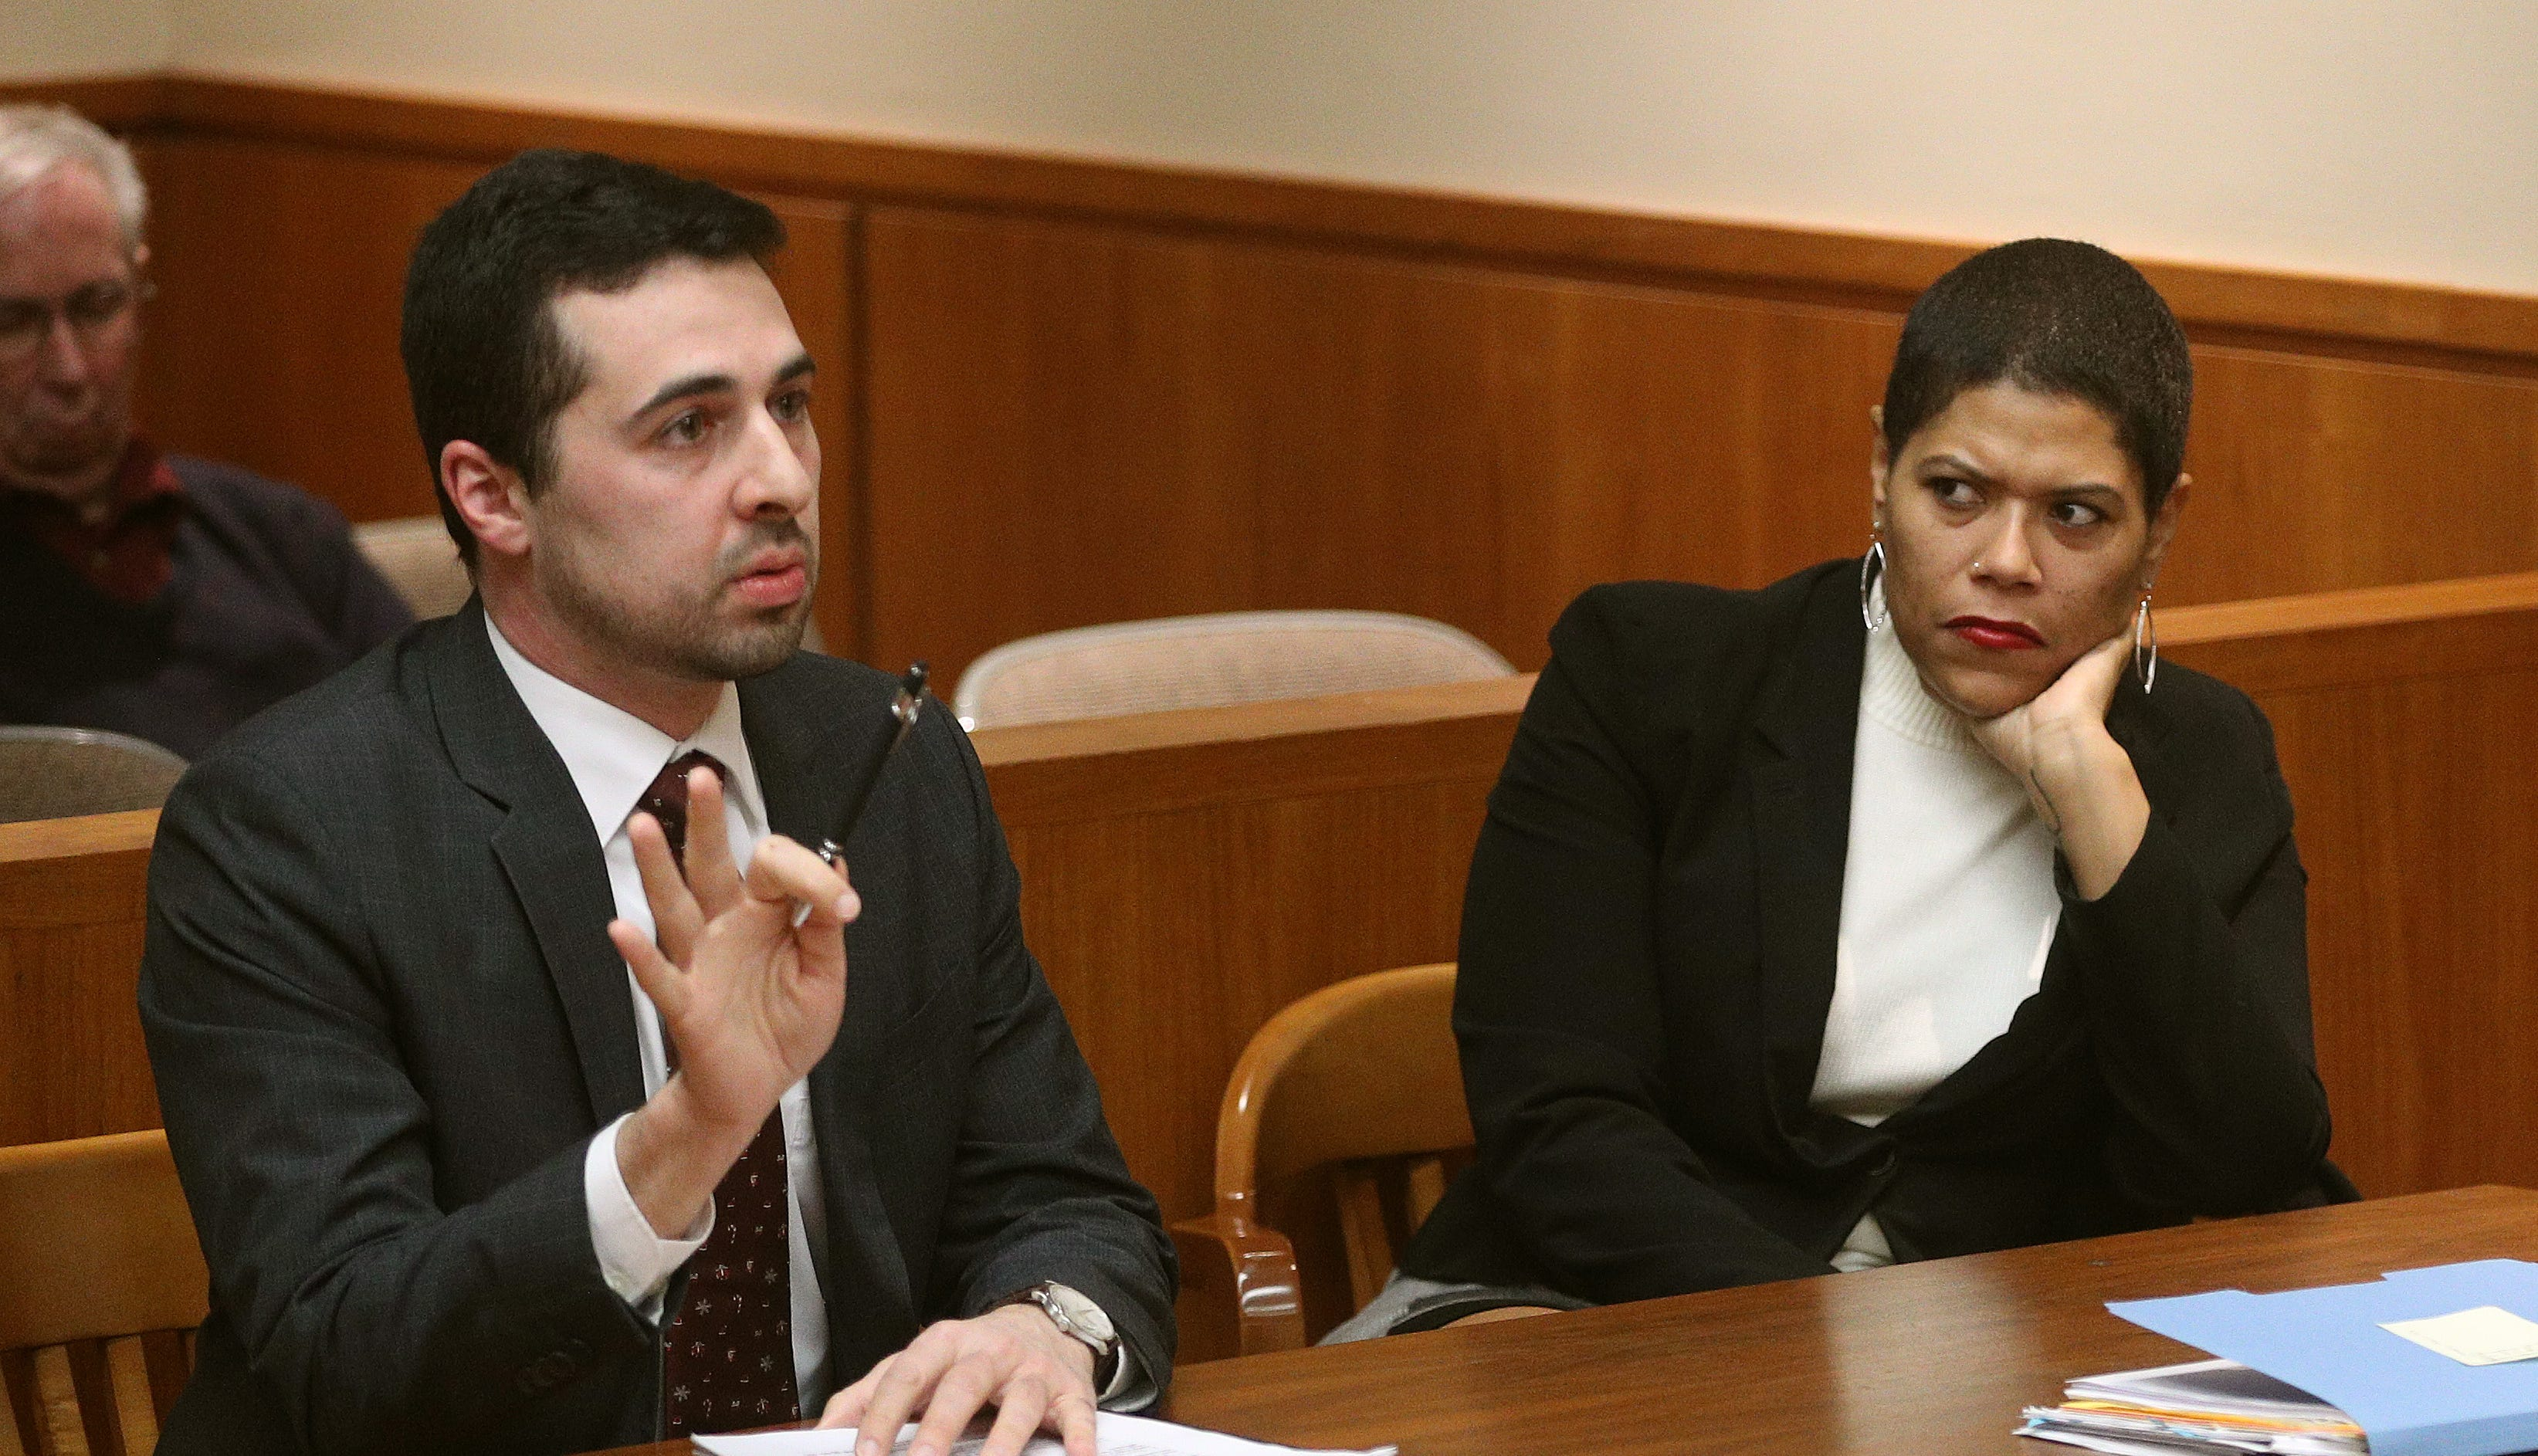 Judge rules Leticia Astacio must face trial on gun charges